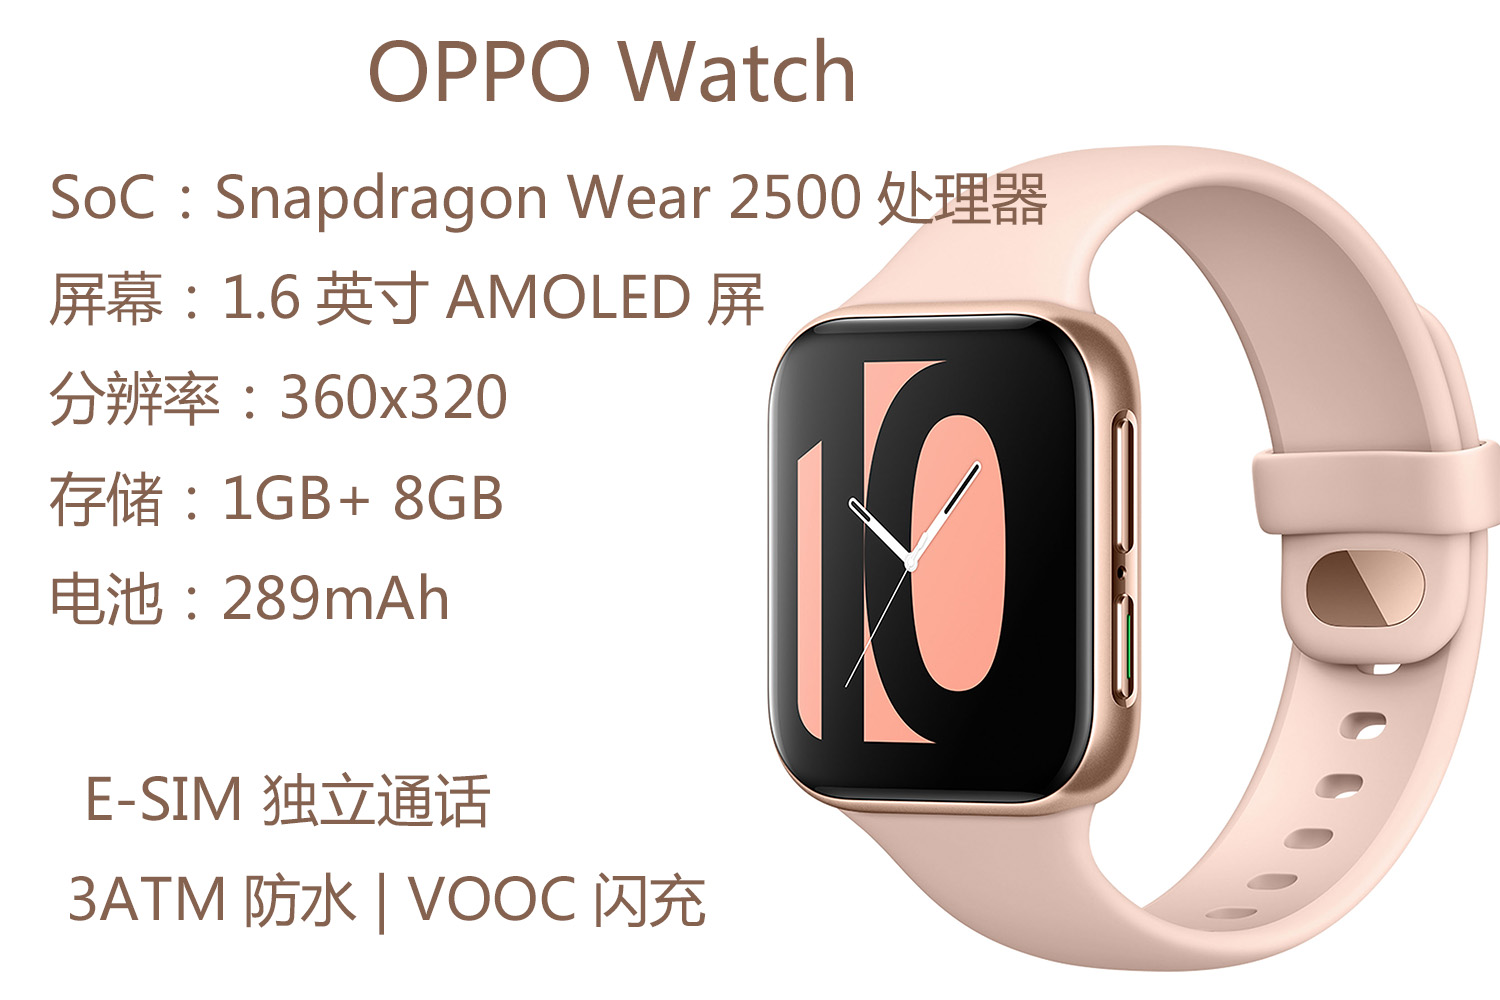 同被指与Apple Watch高度相似 OPPO Watch和小米手表又有何不同